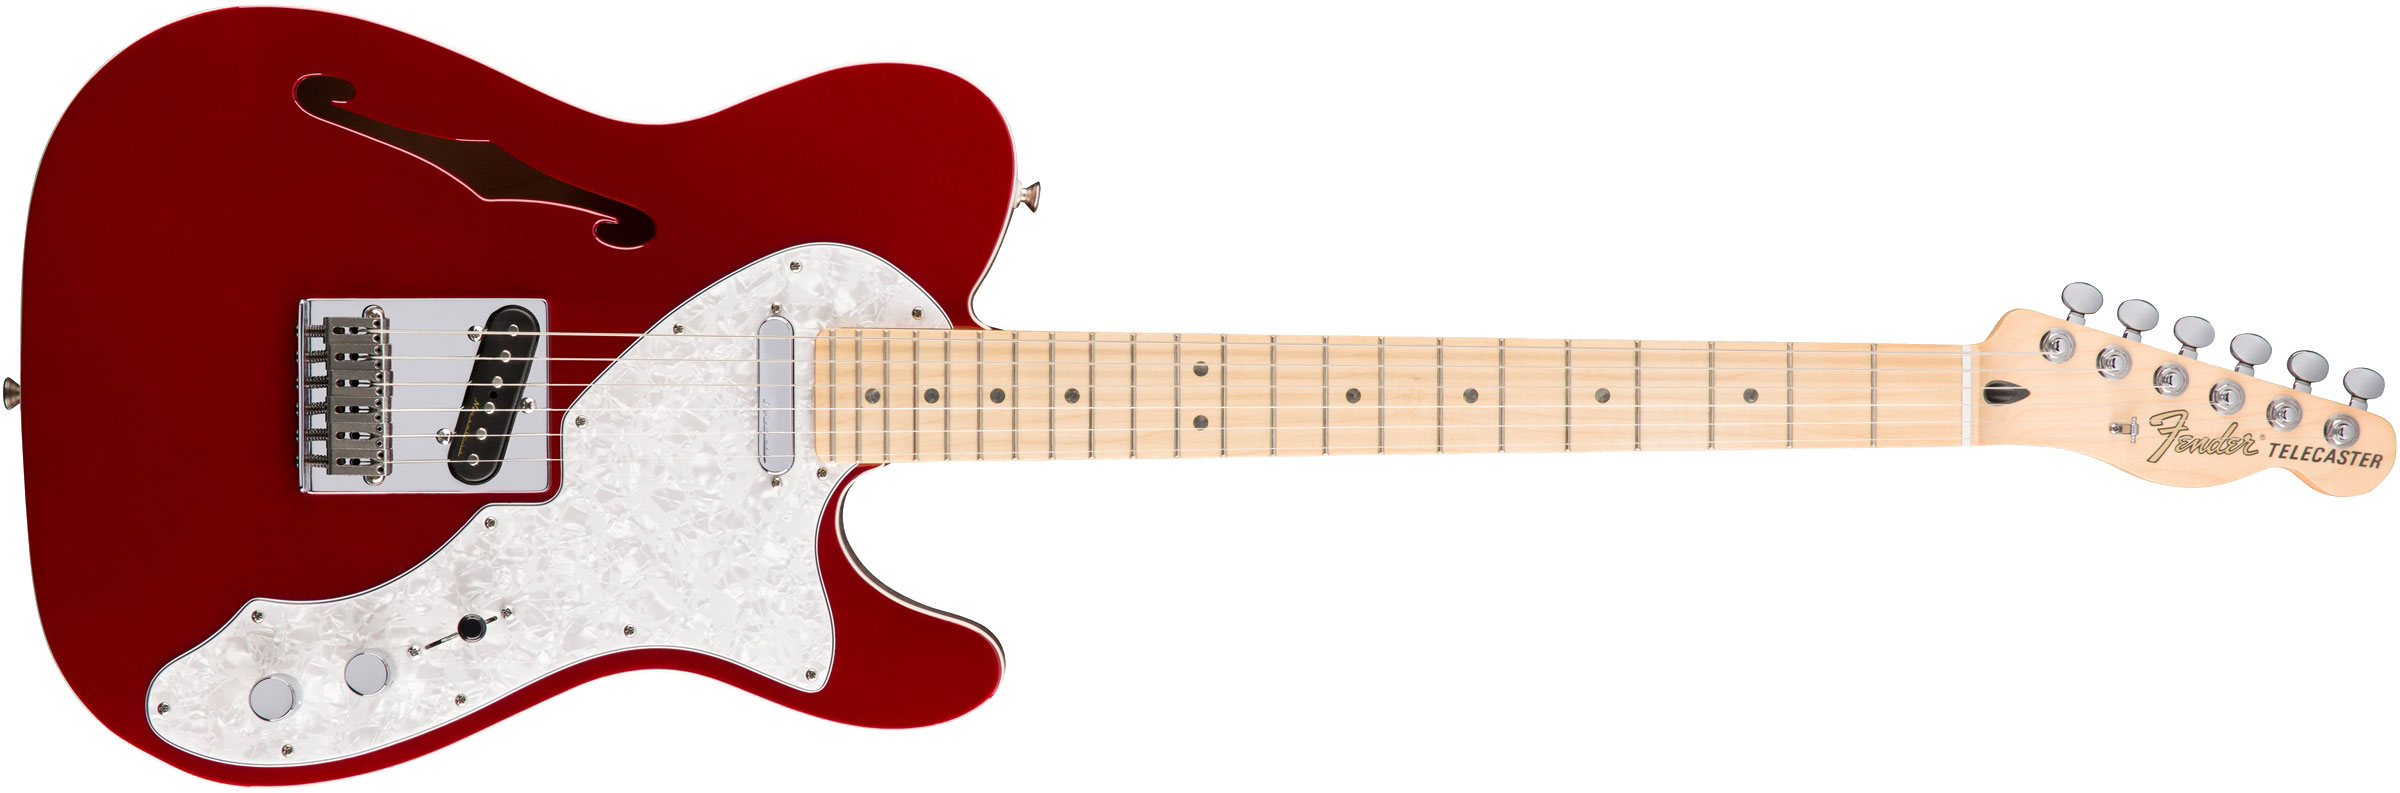 GUITARRA FENDER 014 7602 - DELUXE TELE THINLINE MN - 309 - CANDY APPLE RED